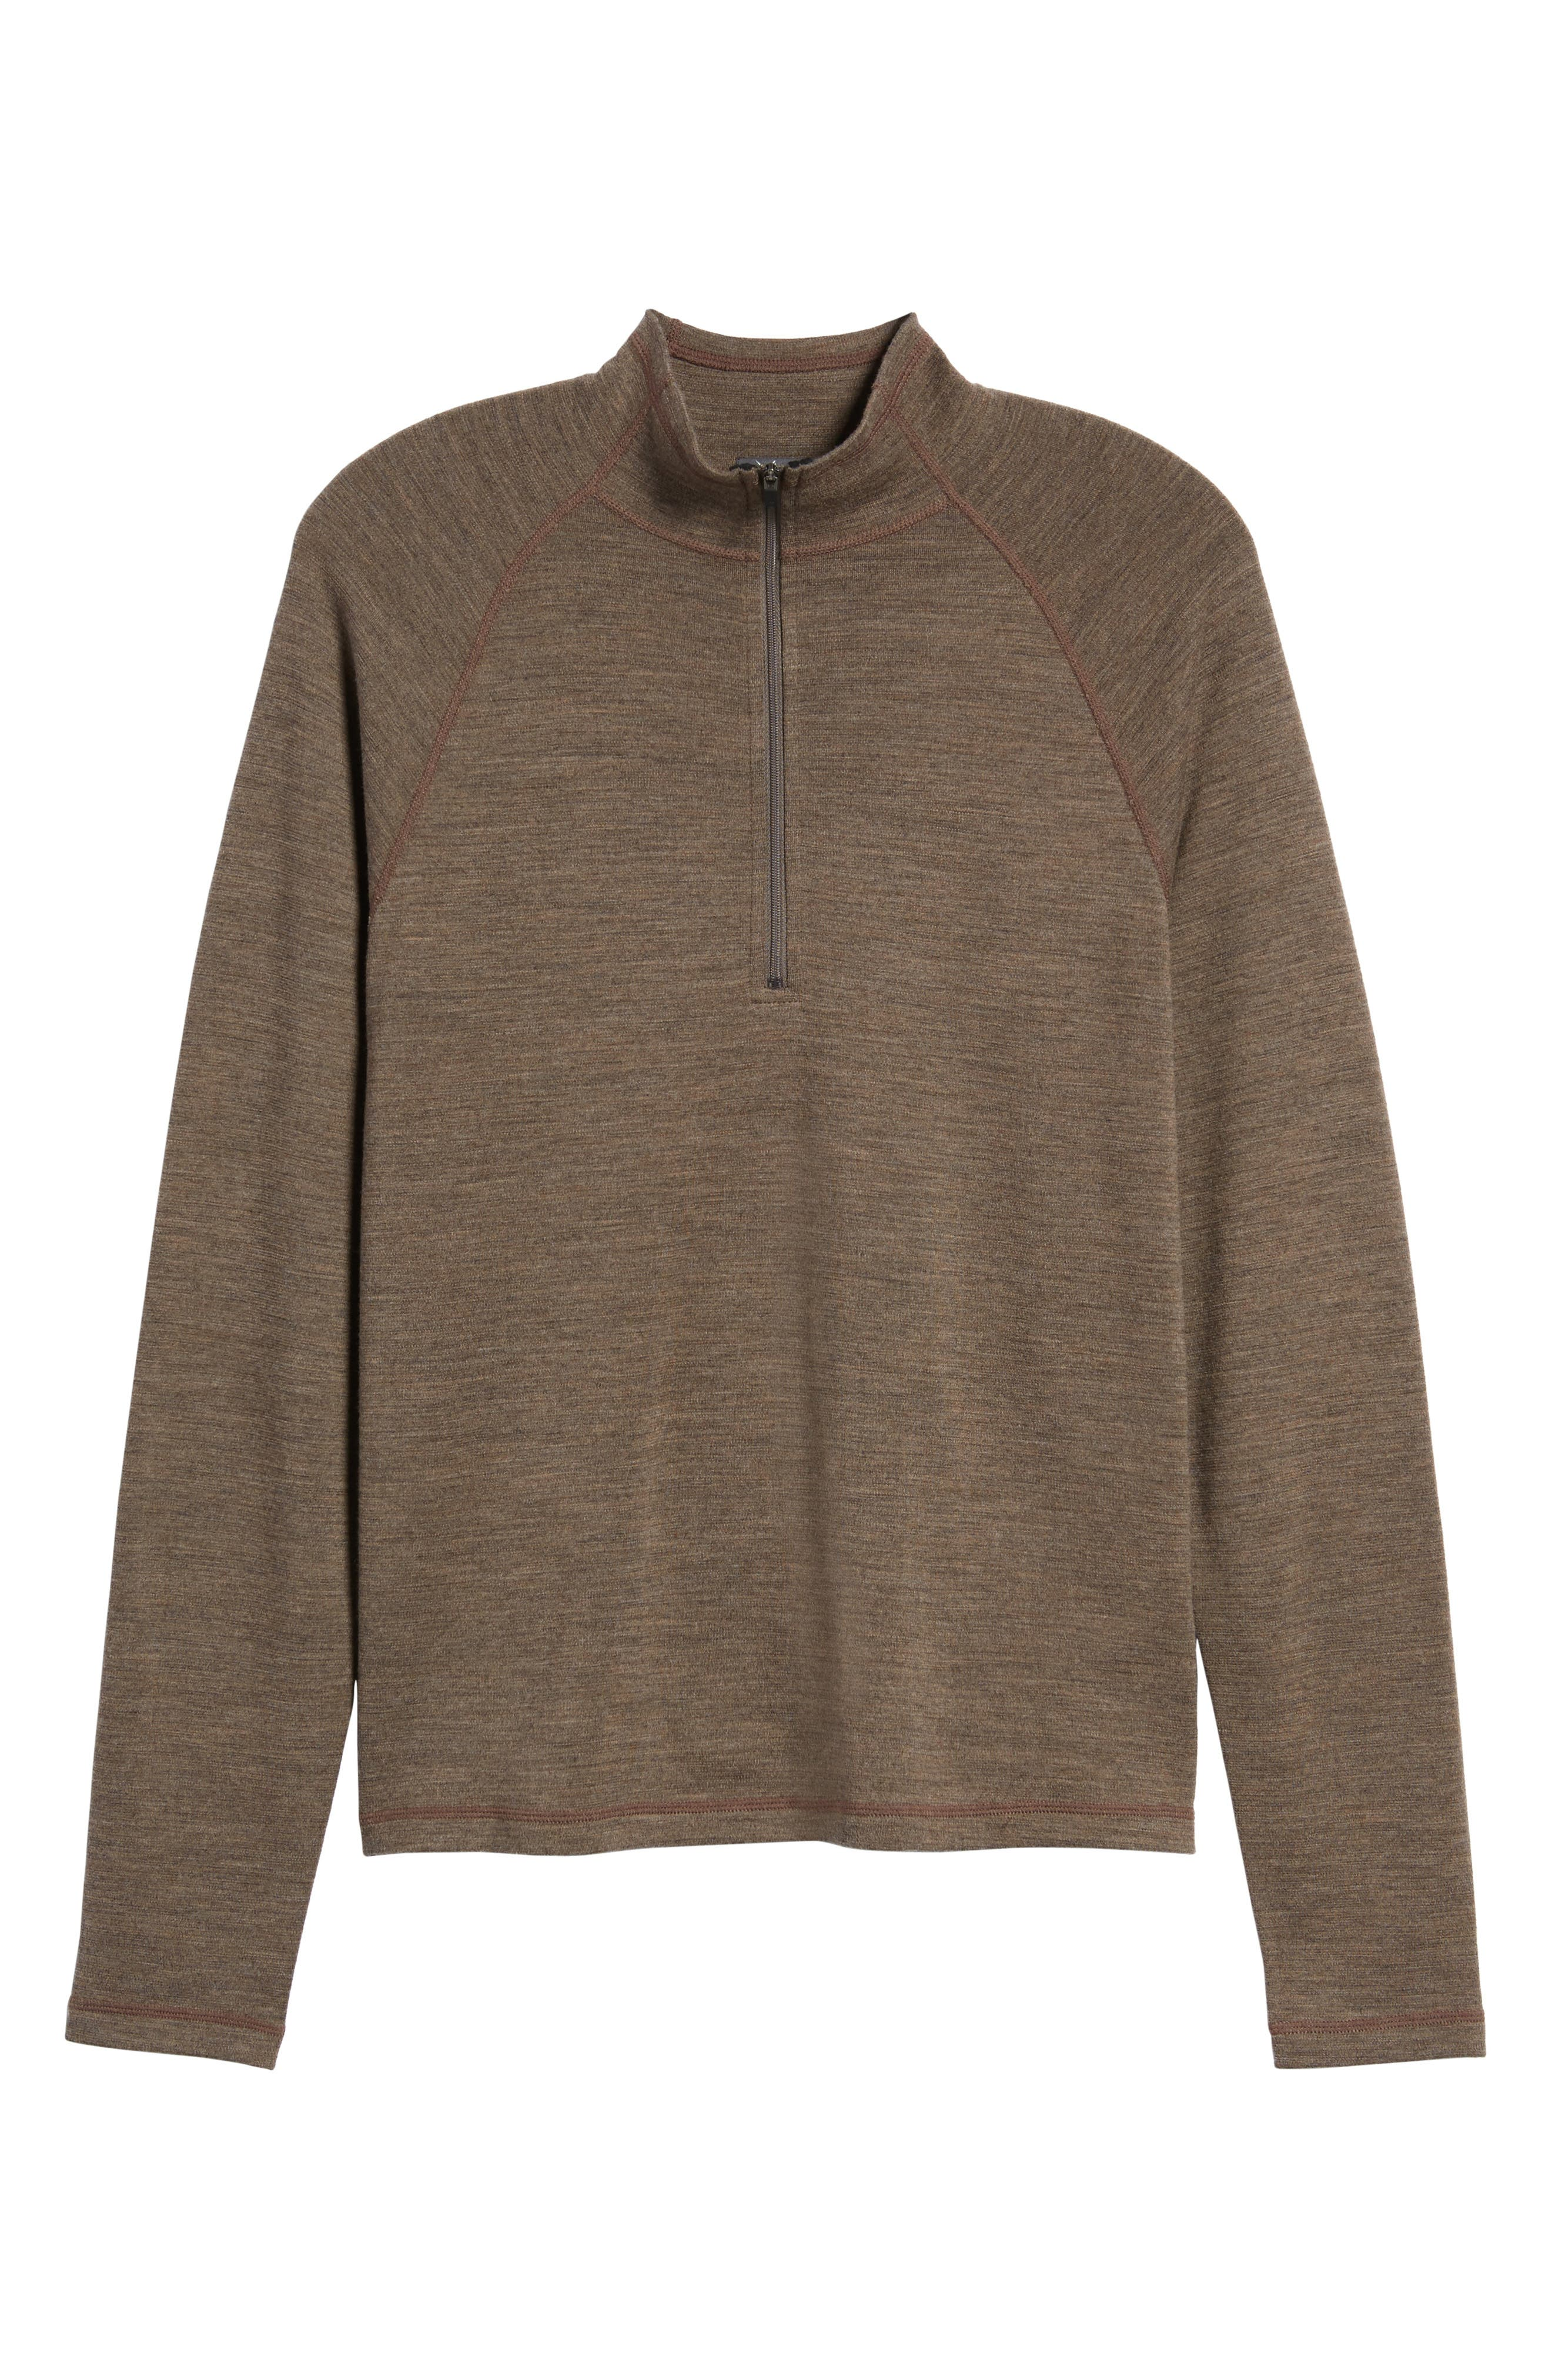 'Shak' Merino Wool Quarter Zip Top,                             Alternate thumbnail 6, color,                             250